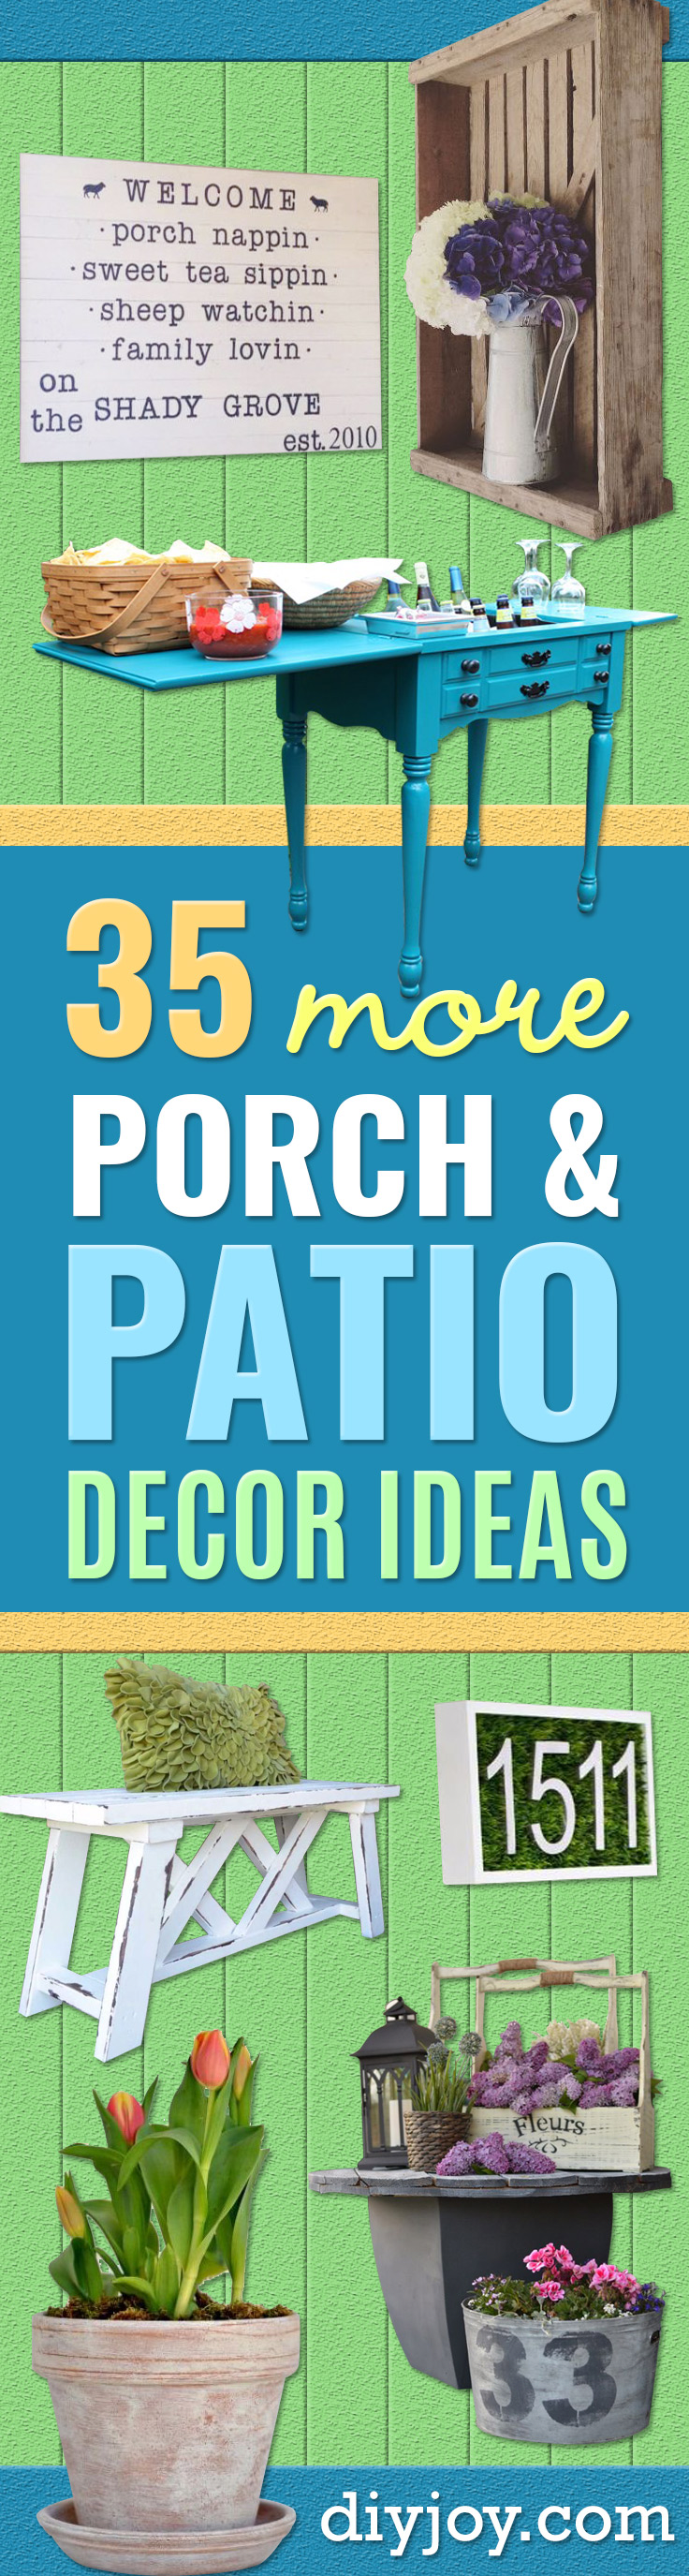 DIY Porch and Patio Ideas - Decor Projects and Furniture Tutorials You Can Build for the Outdoors - Lights and Lighting, Mason Jar Crafts, Rocking Chairs, Wreaths, Swings, Bench, Cushions, Chairs, Daybeds and Pallet Signs